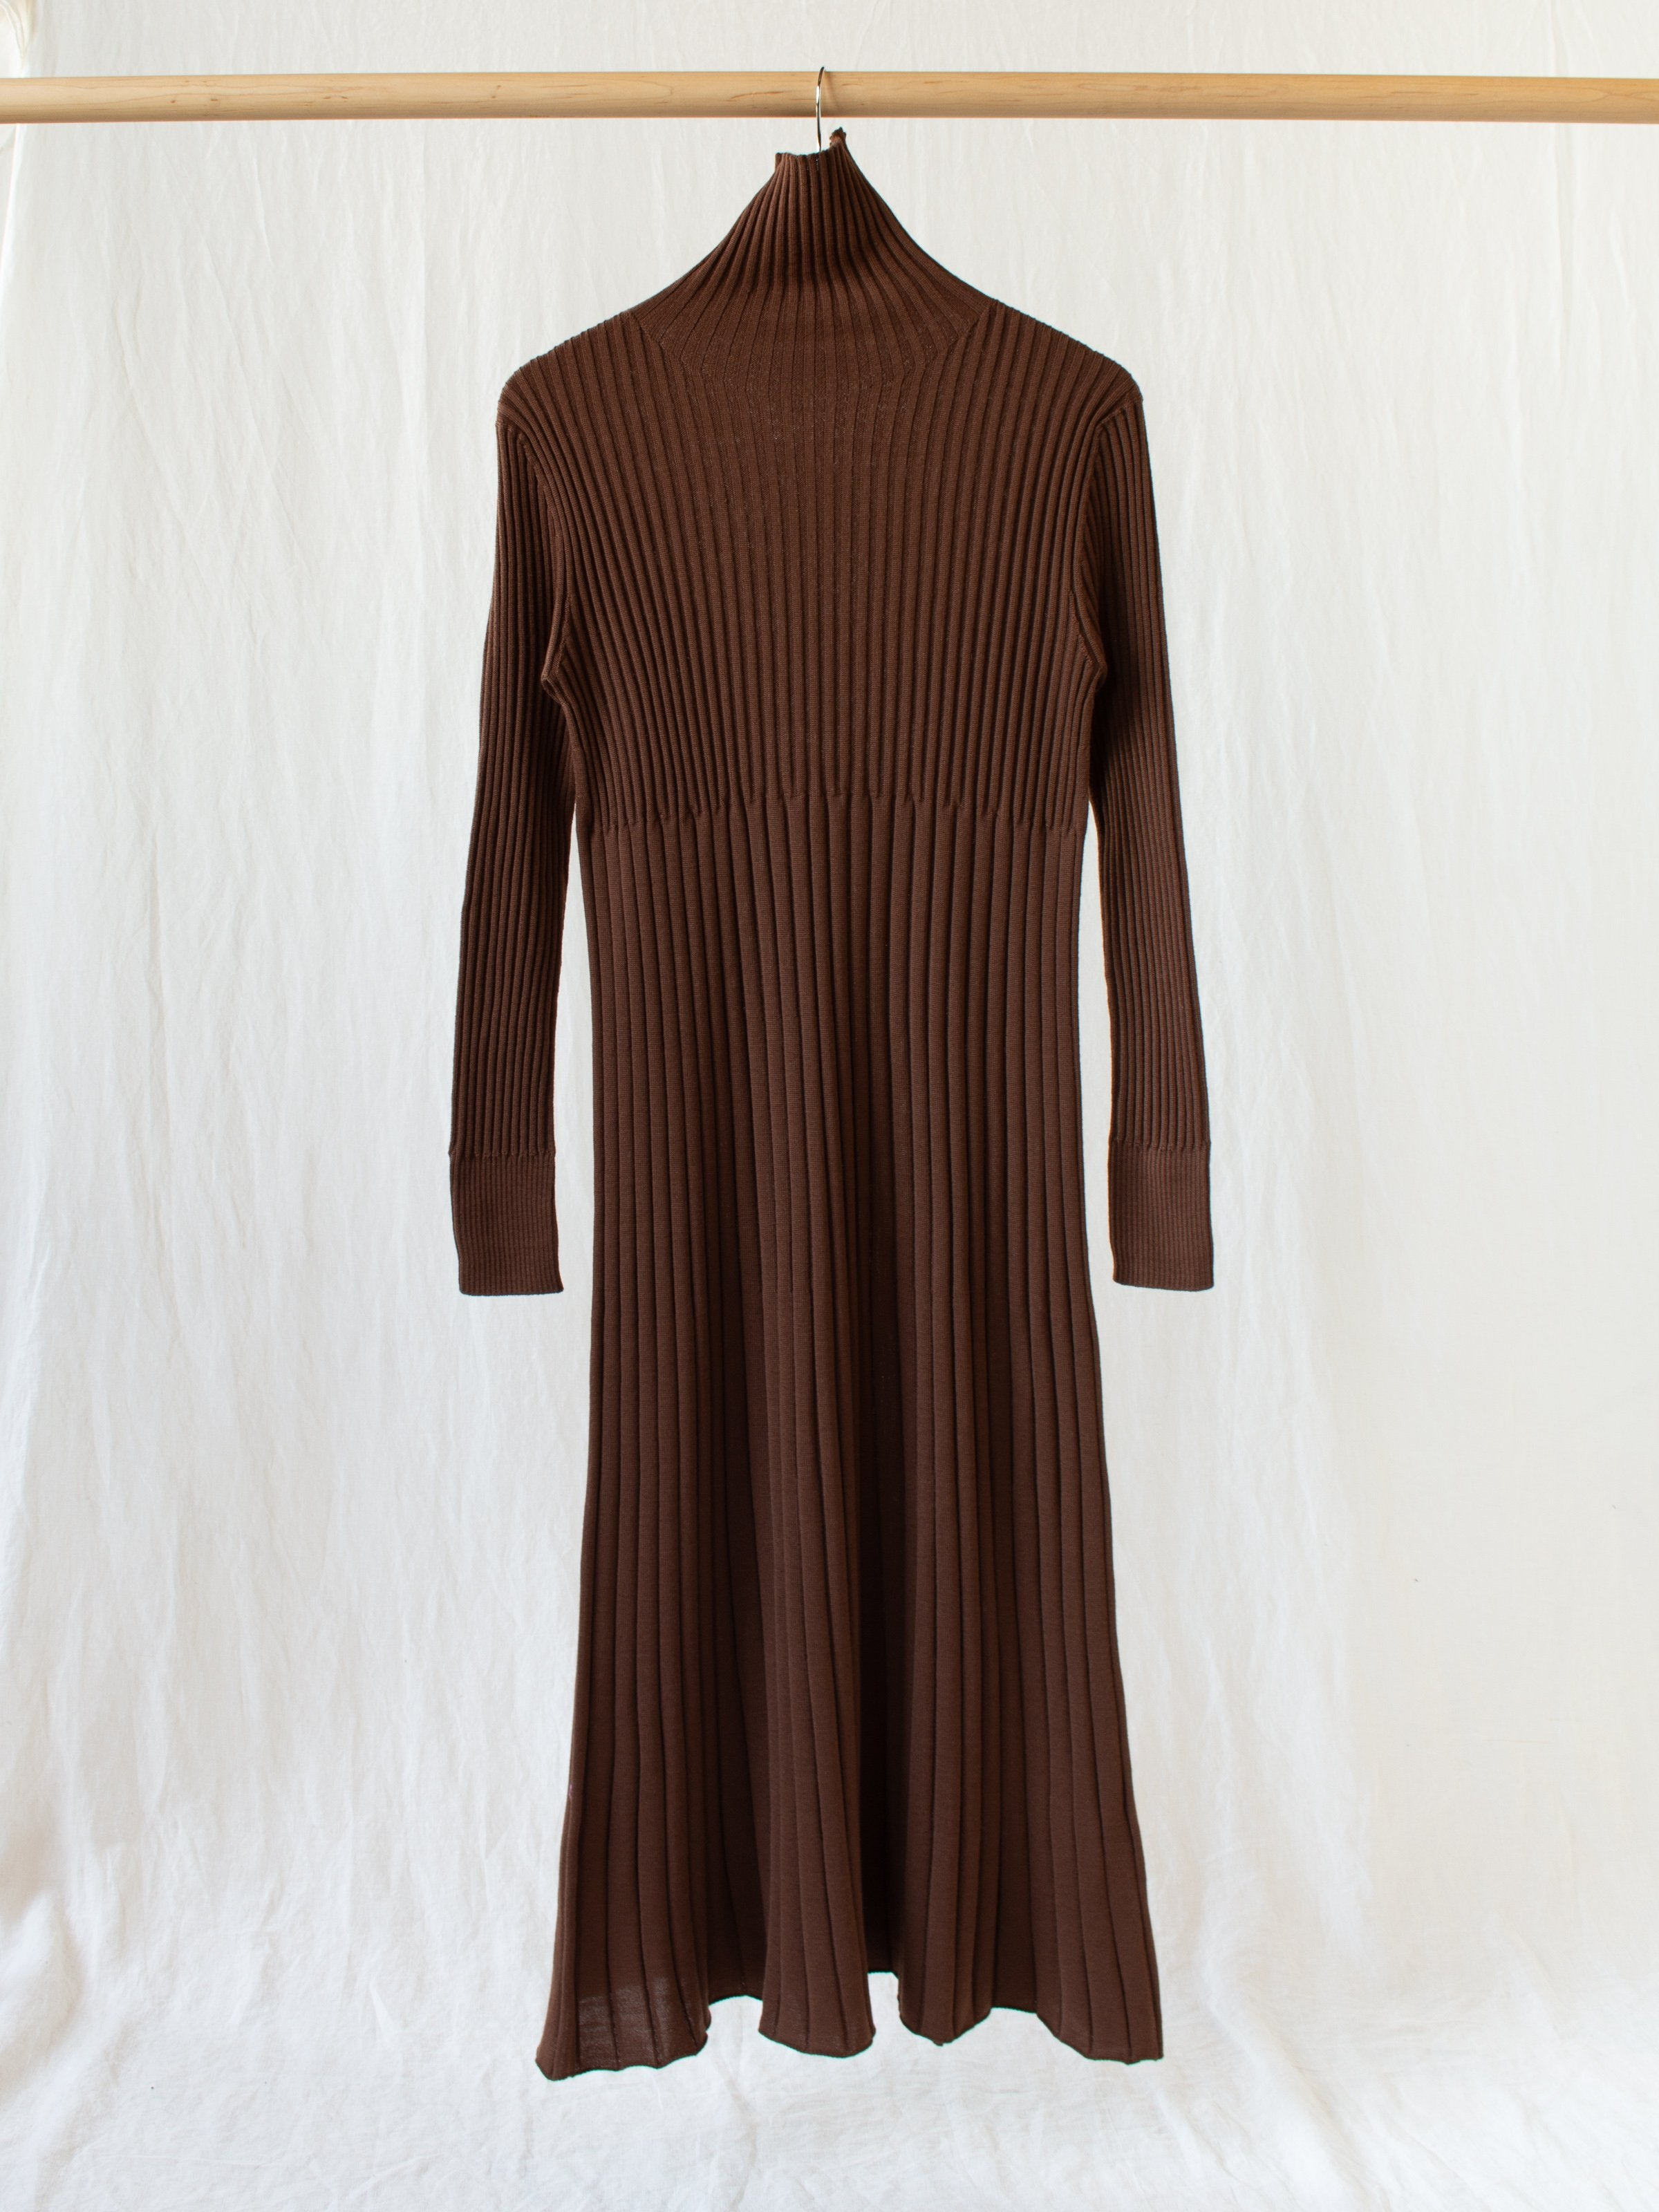 Wool Wide Rib Knit Dress - Maroon Brown